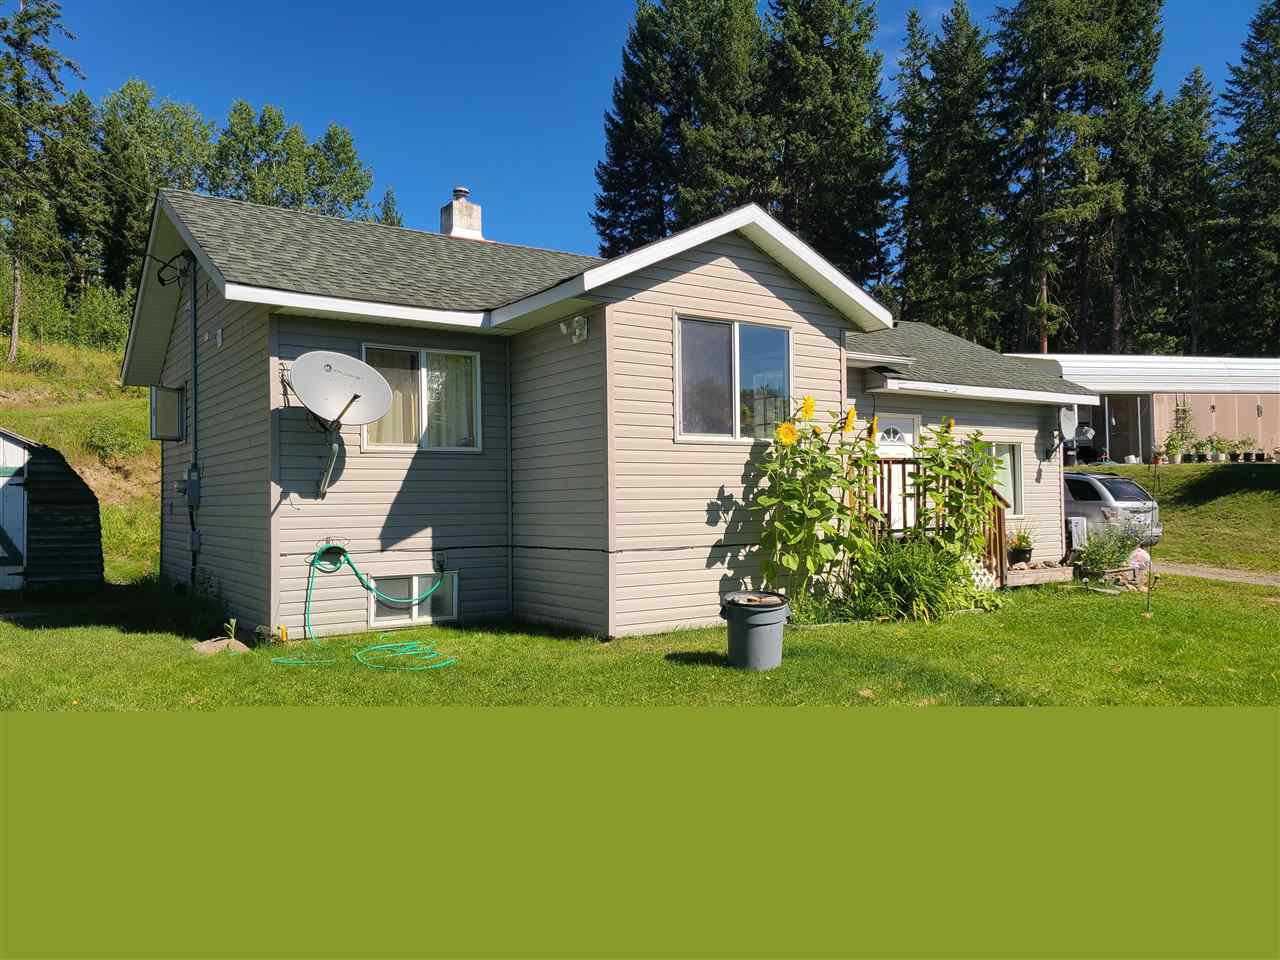 Main Photo: 4606 CANIM-HENDRIX LAKE Road: Forest Grove House for sale (100 Mile House (Zone 10))  : MLS®# R2525207